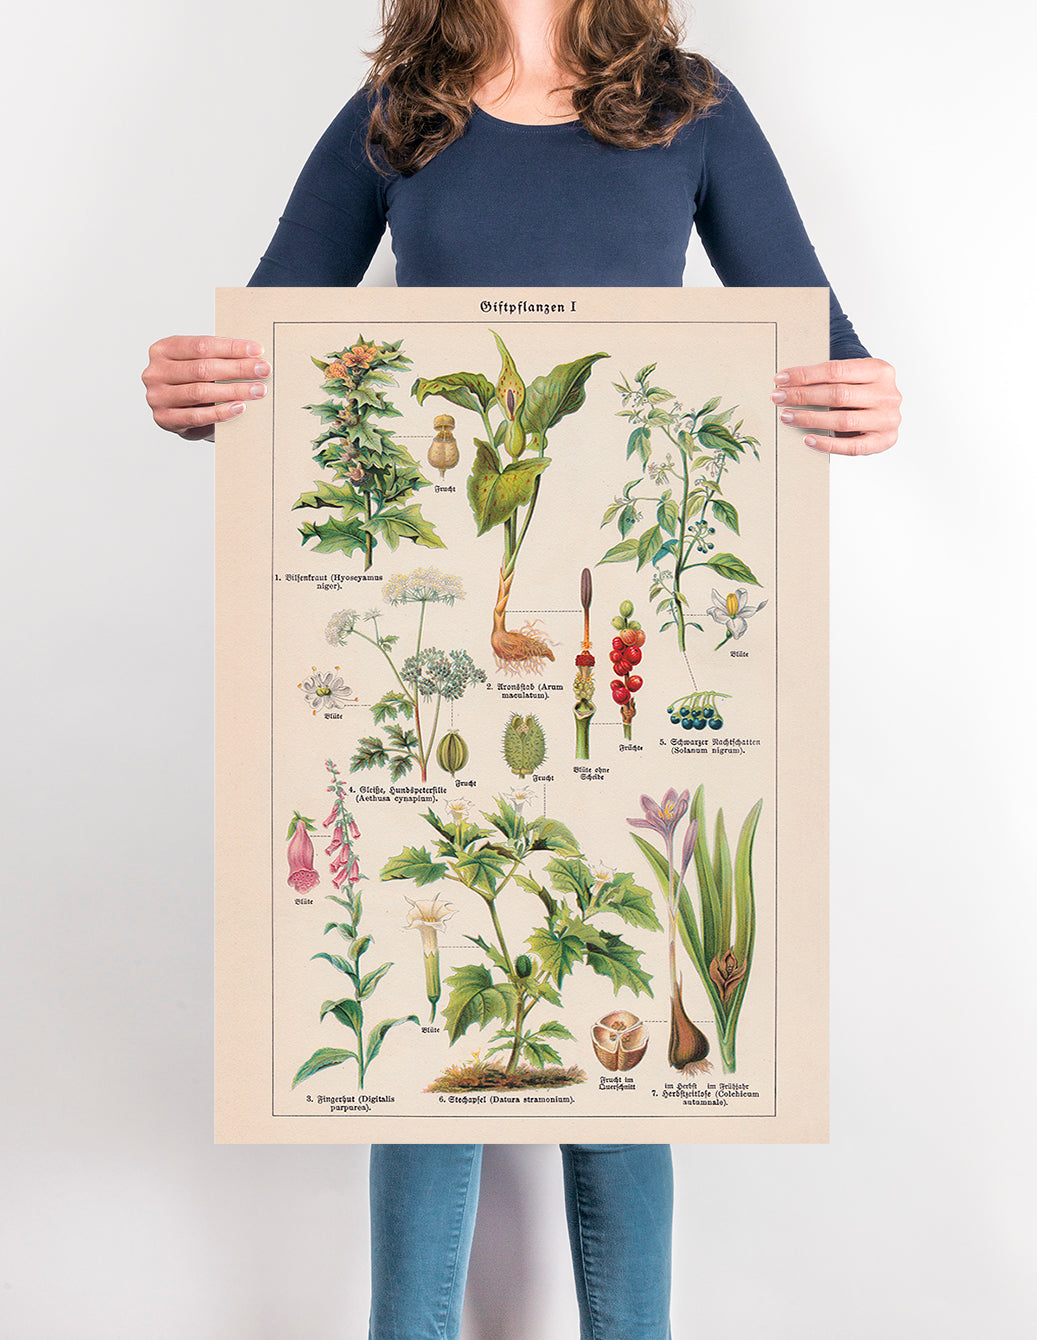 Poisonous and Toxic Plants I (Giftpflanze) - Kuriosis Vintage Prints